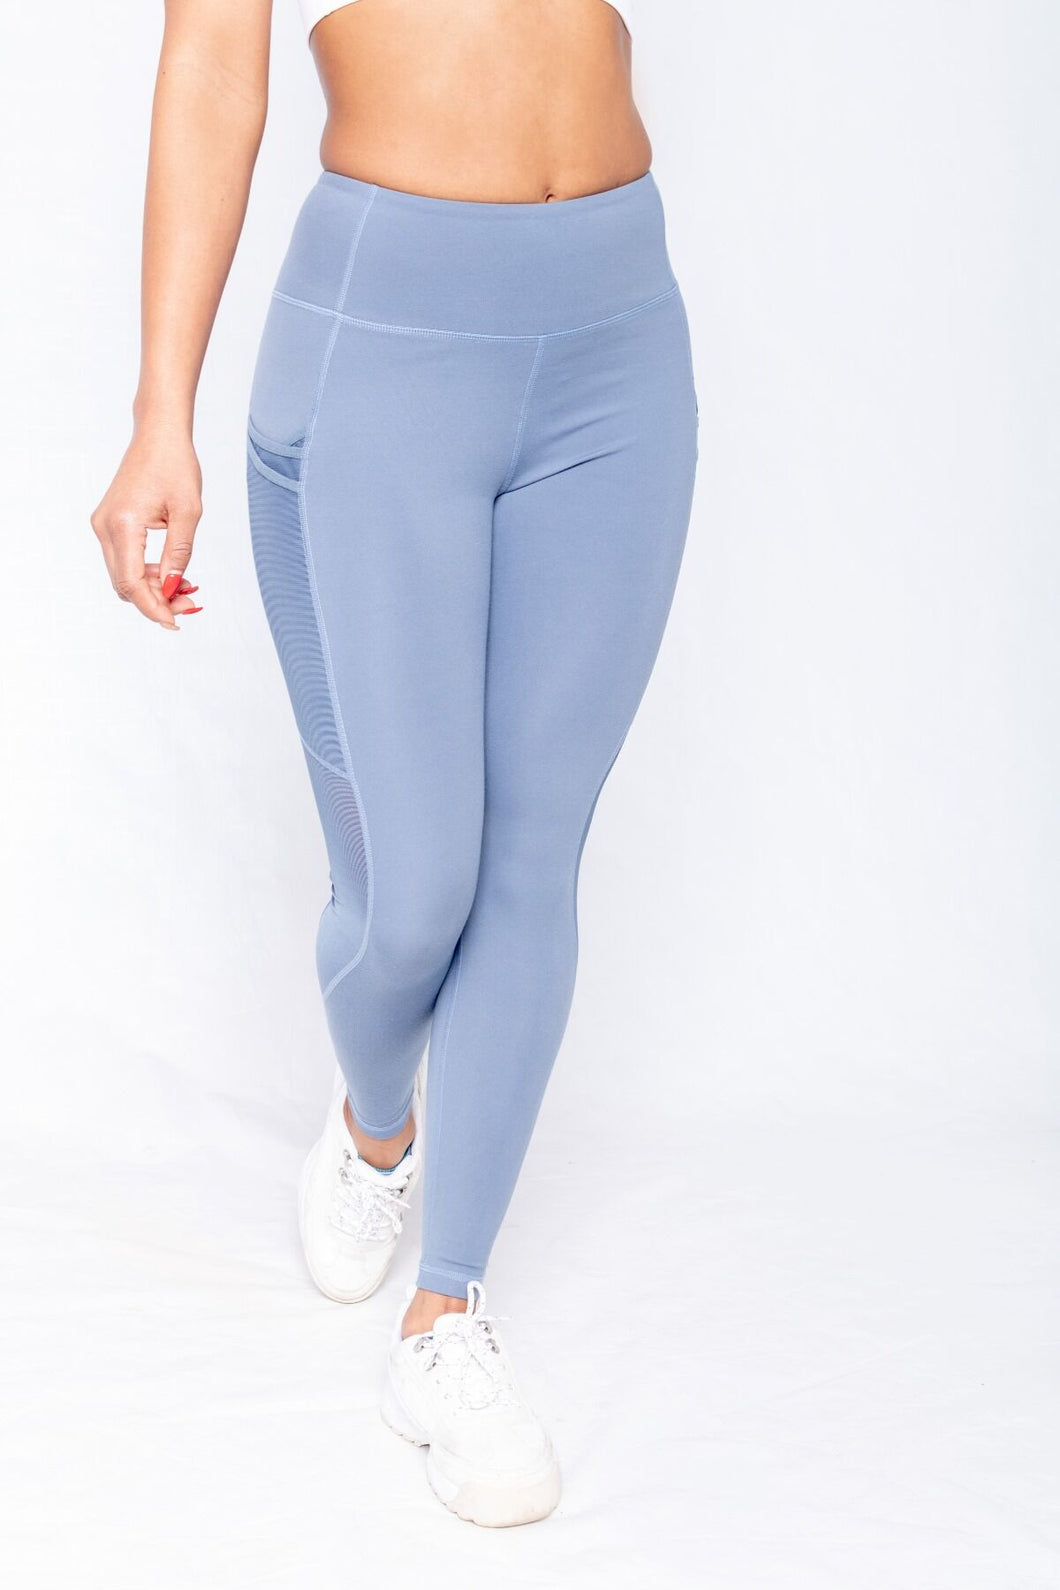 Shakolo mid rise leggings in blue front view with one leg forward